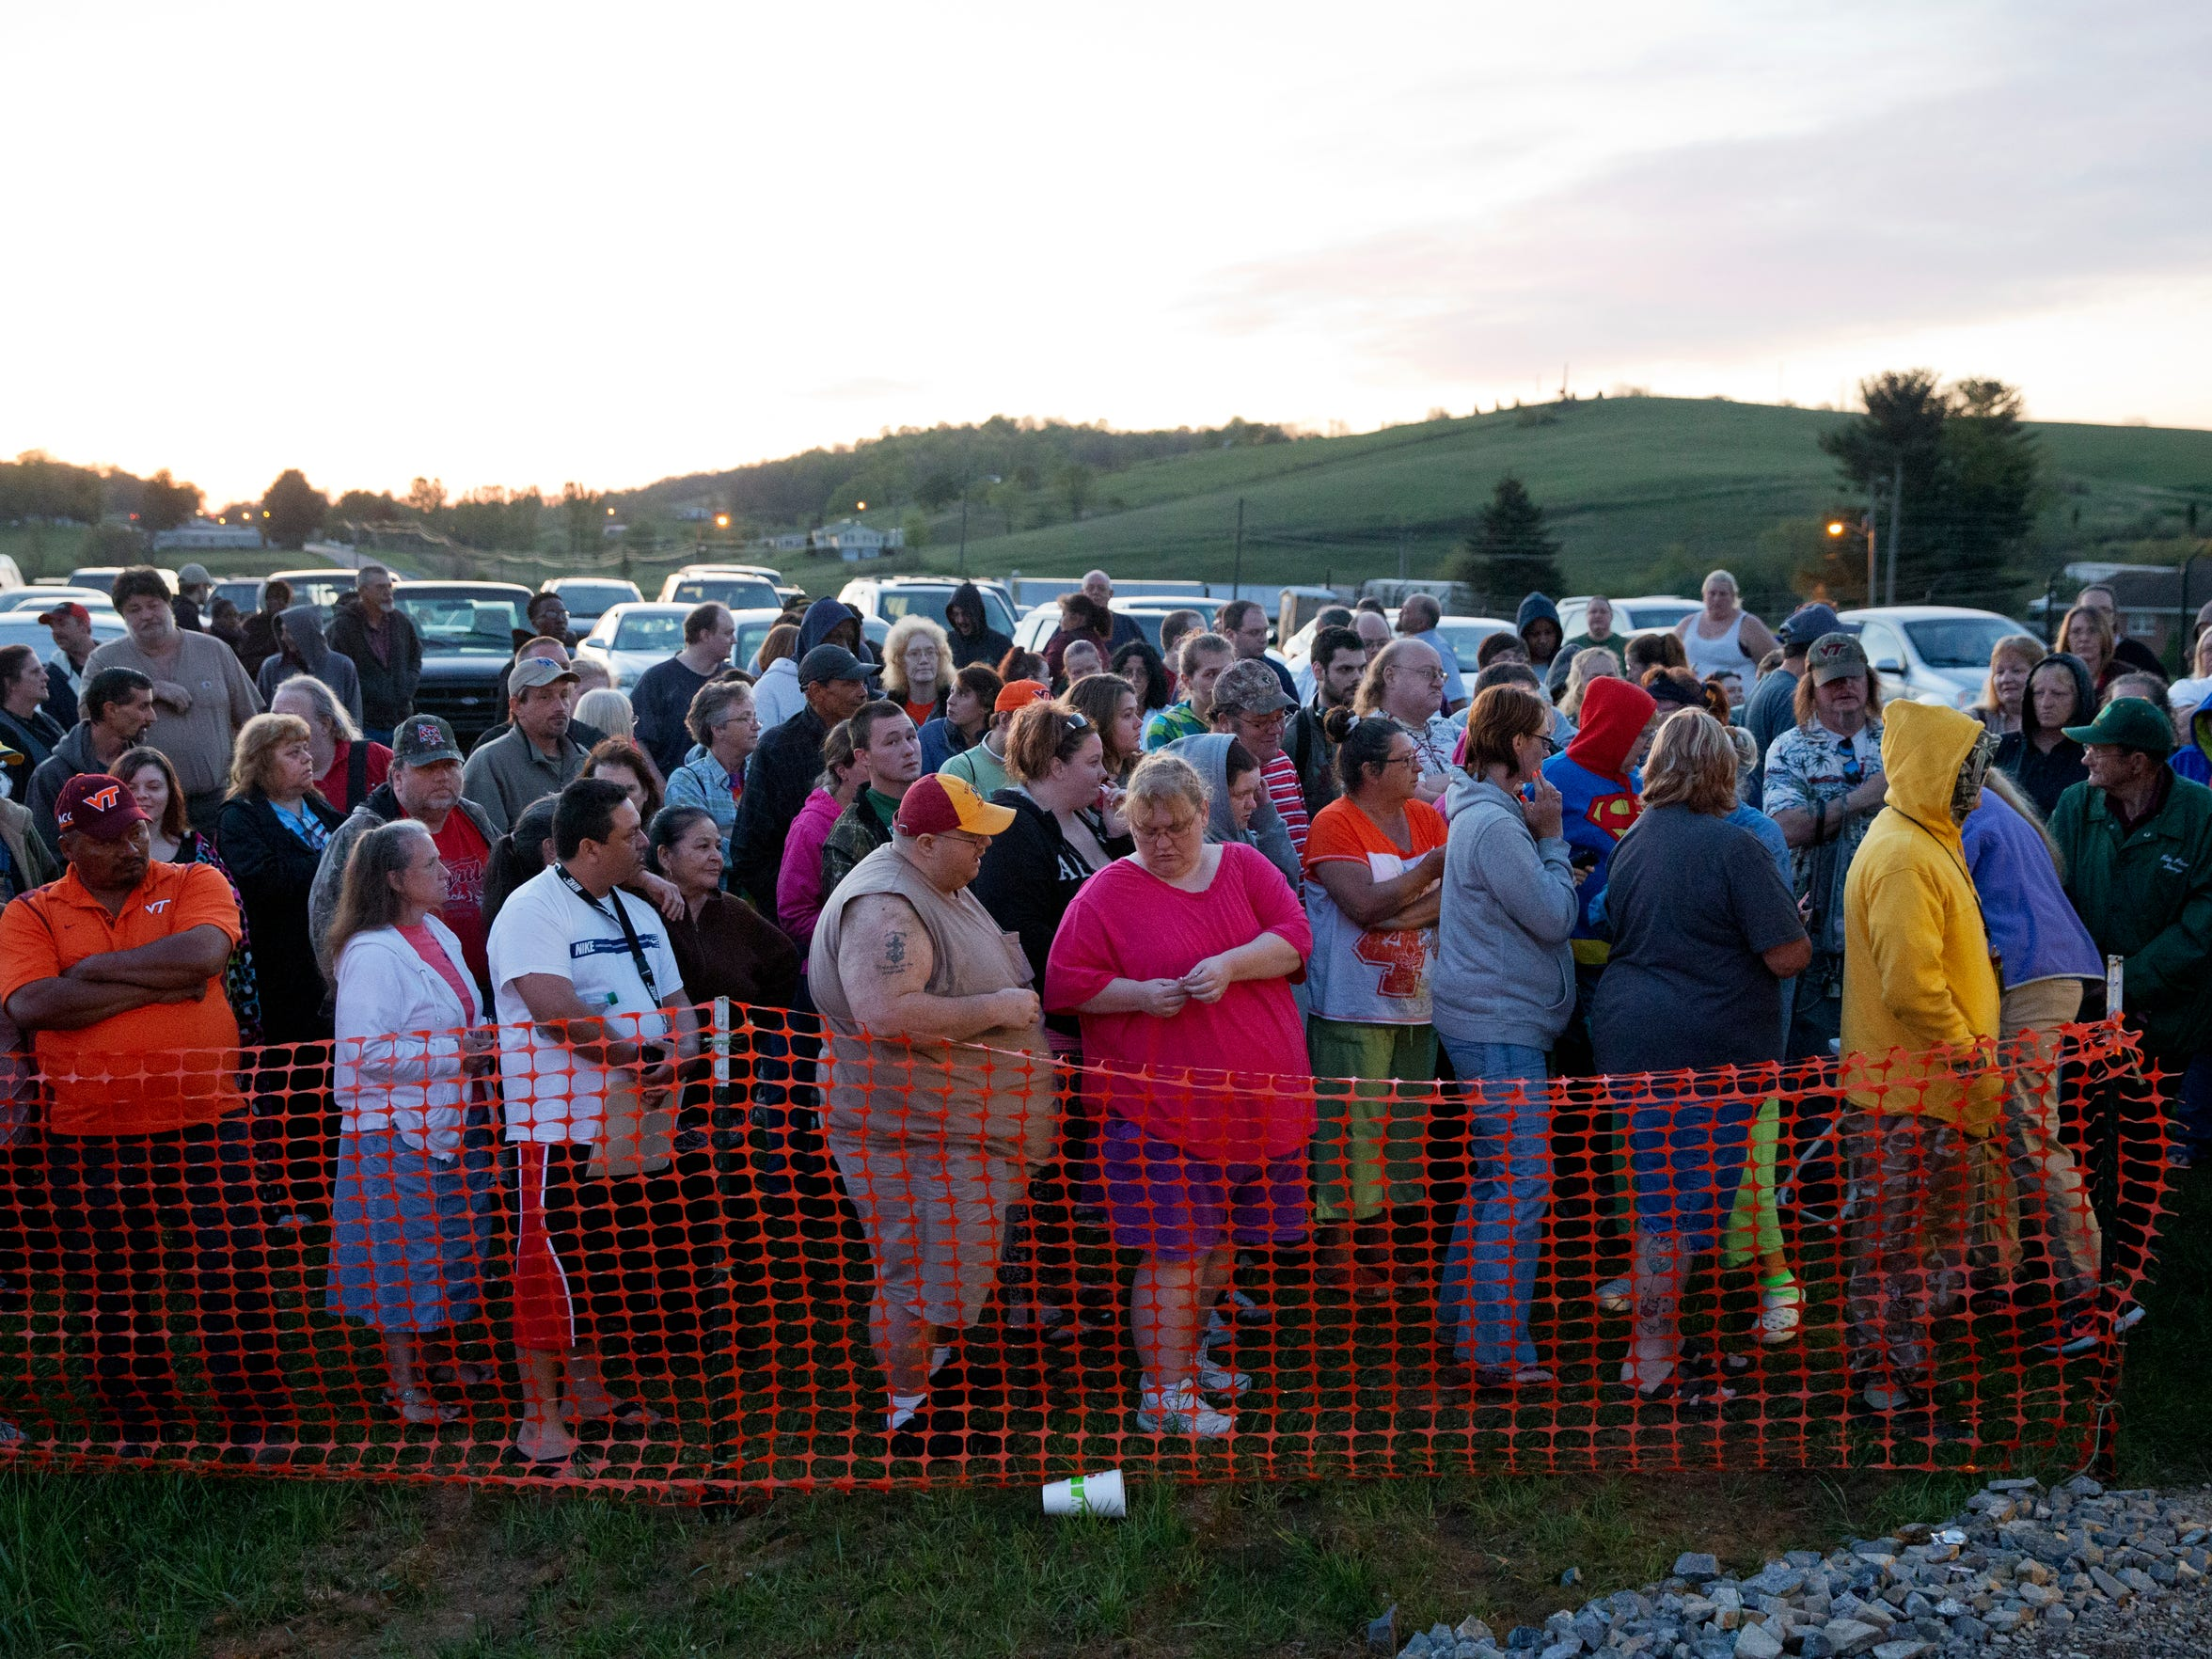 Hundreds of people line up in the early morning to